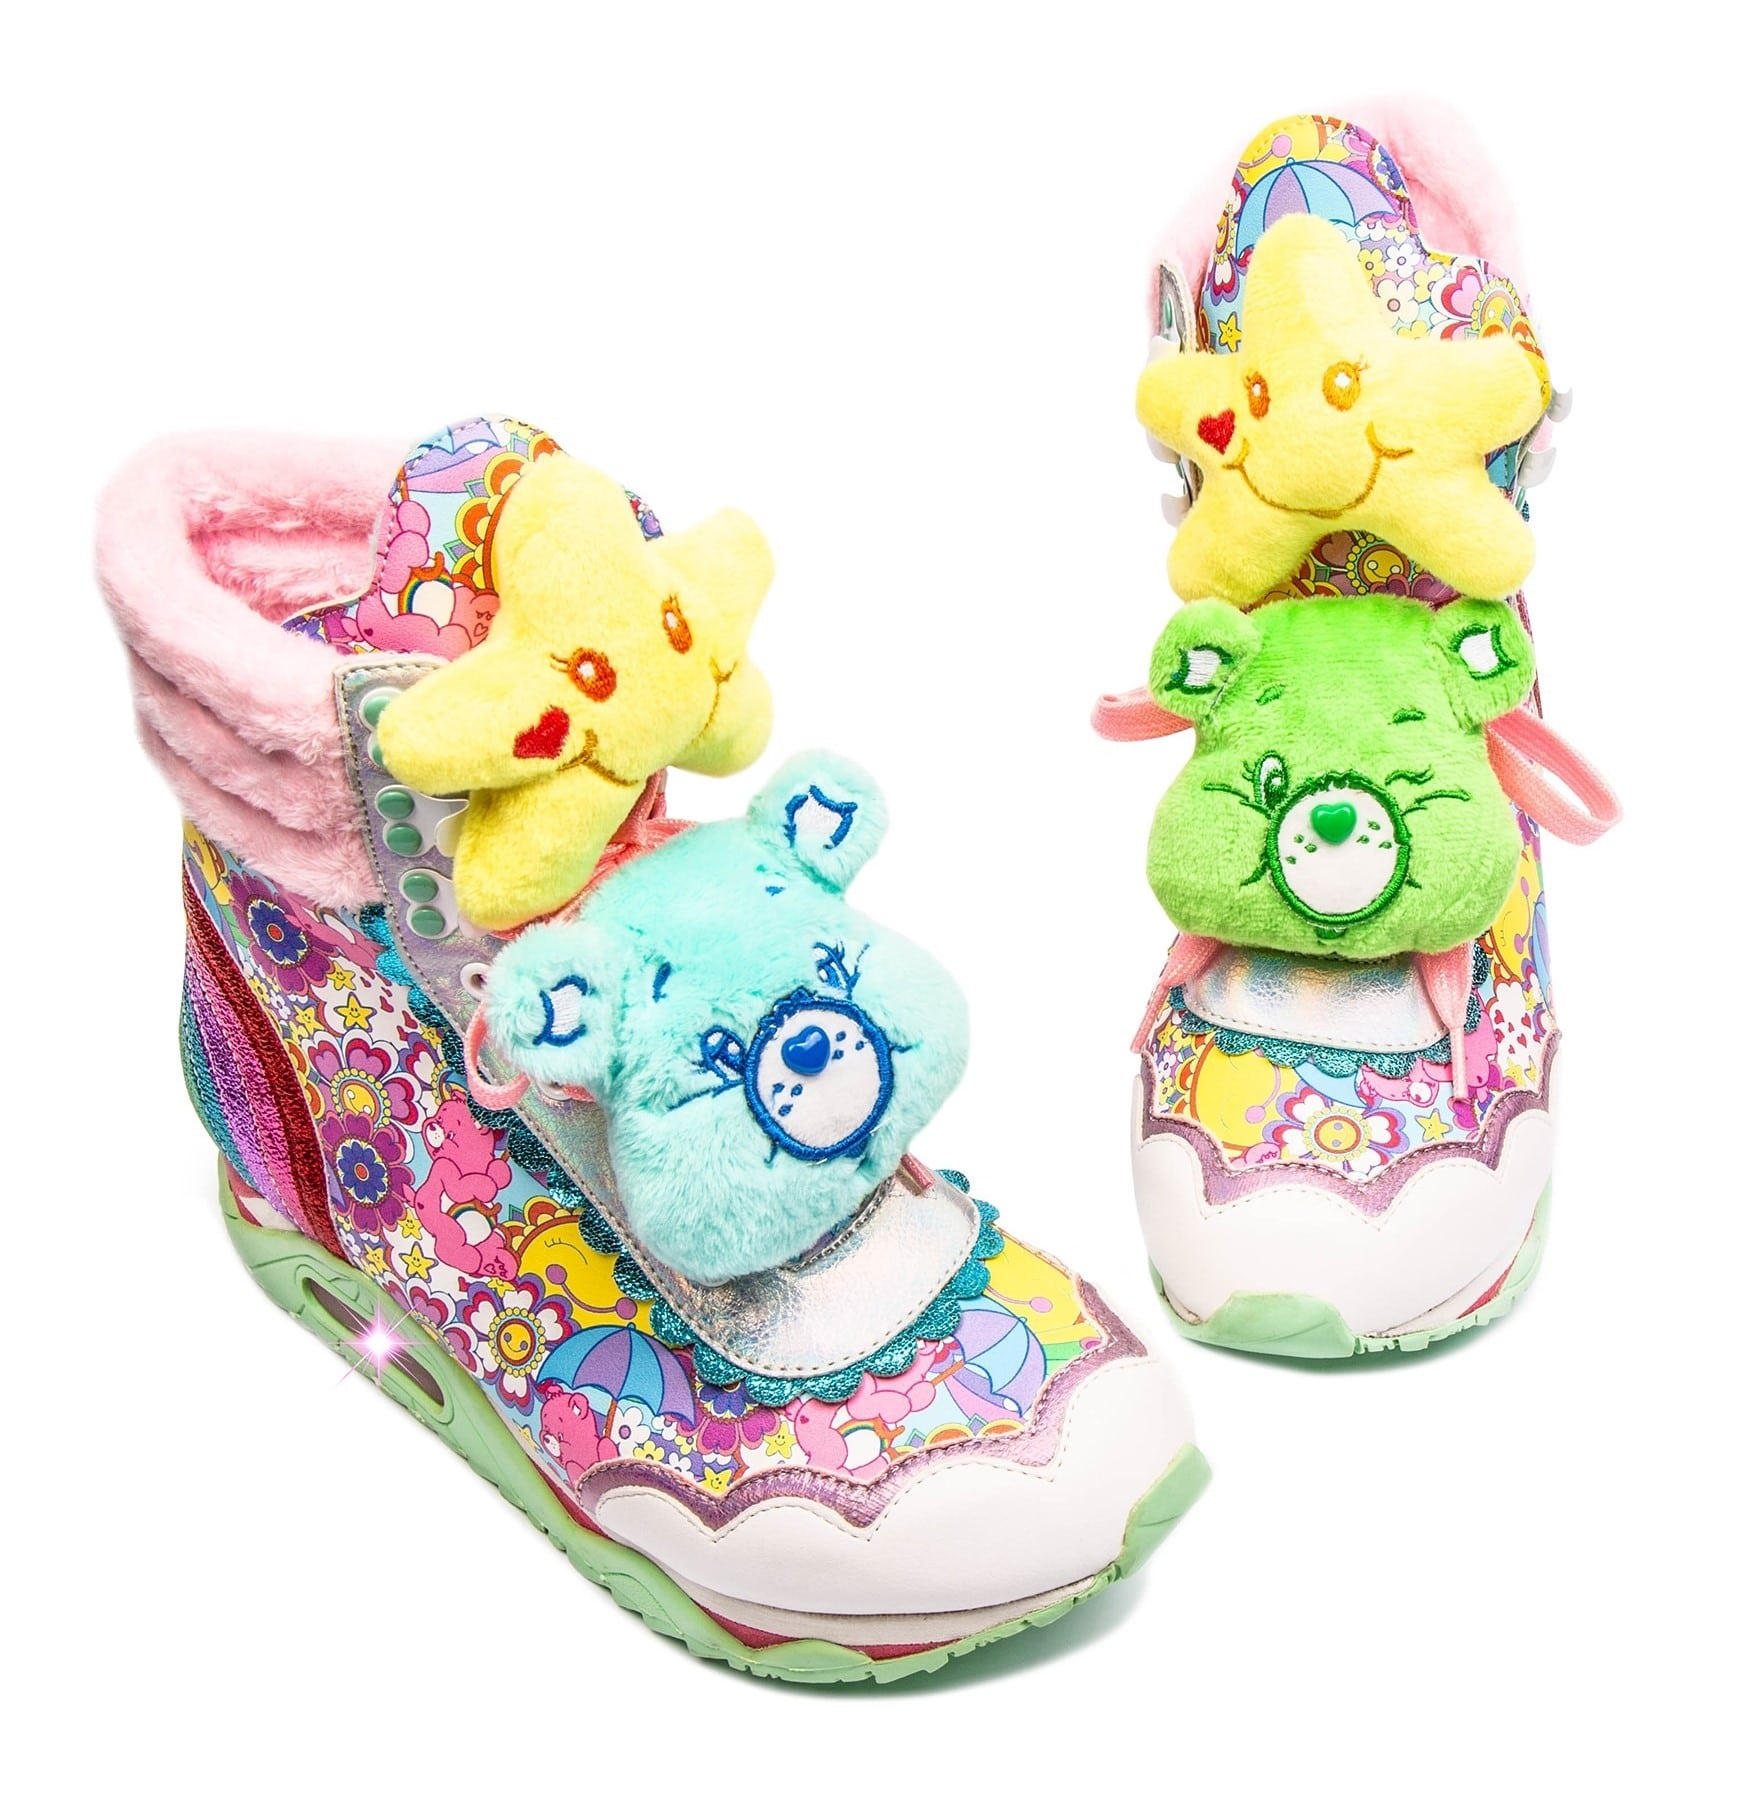 Irregular Choice Care Bears collection includes outrageous furry shoes 16